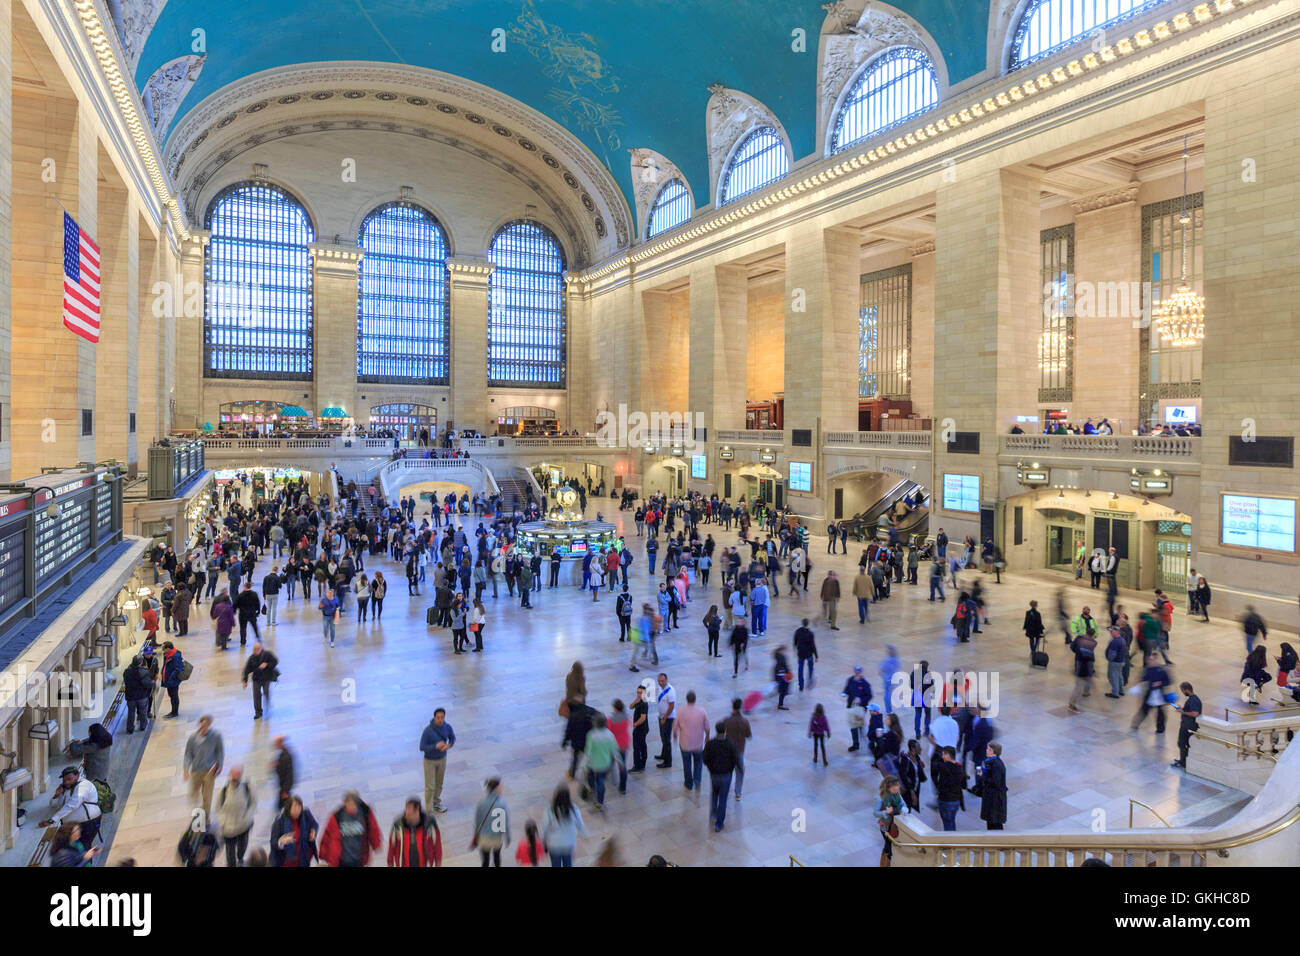 USA, New York, New York, Manhattan, Grand Central Station Photo Stock